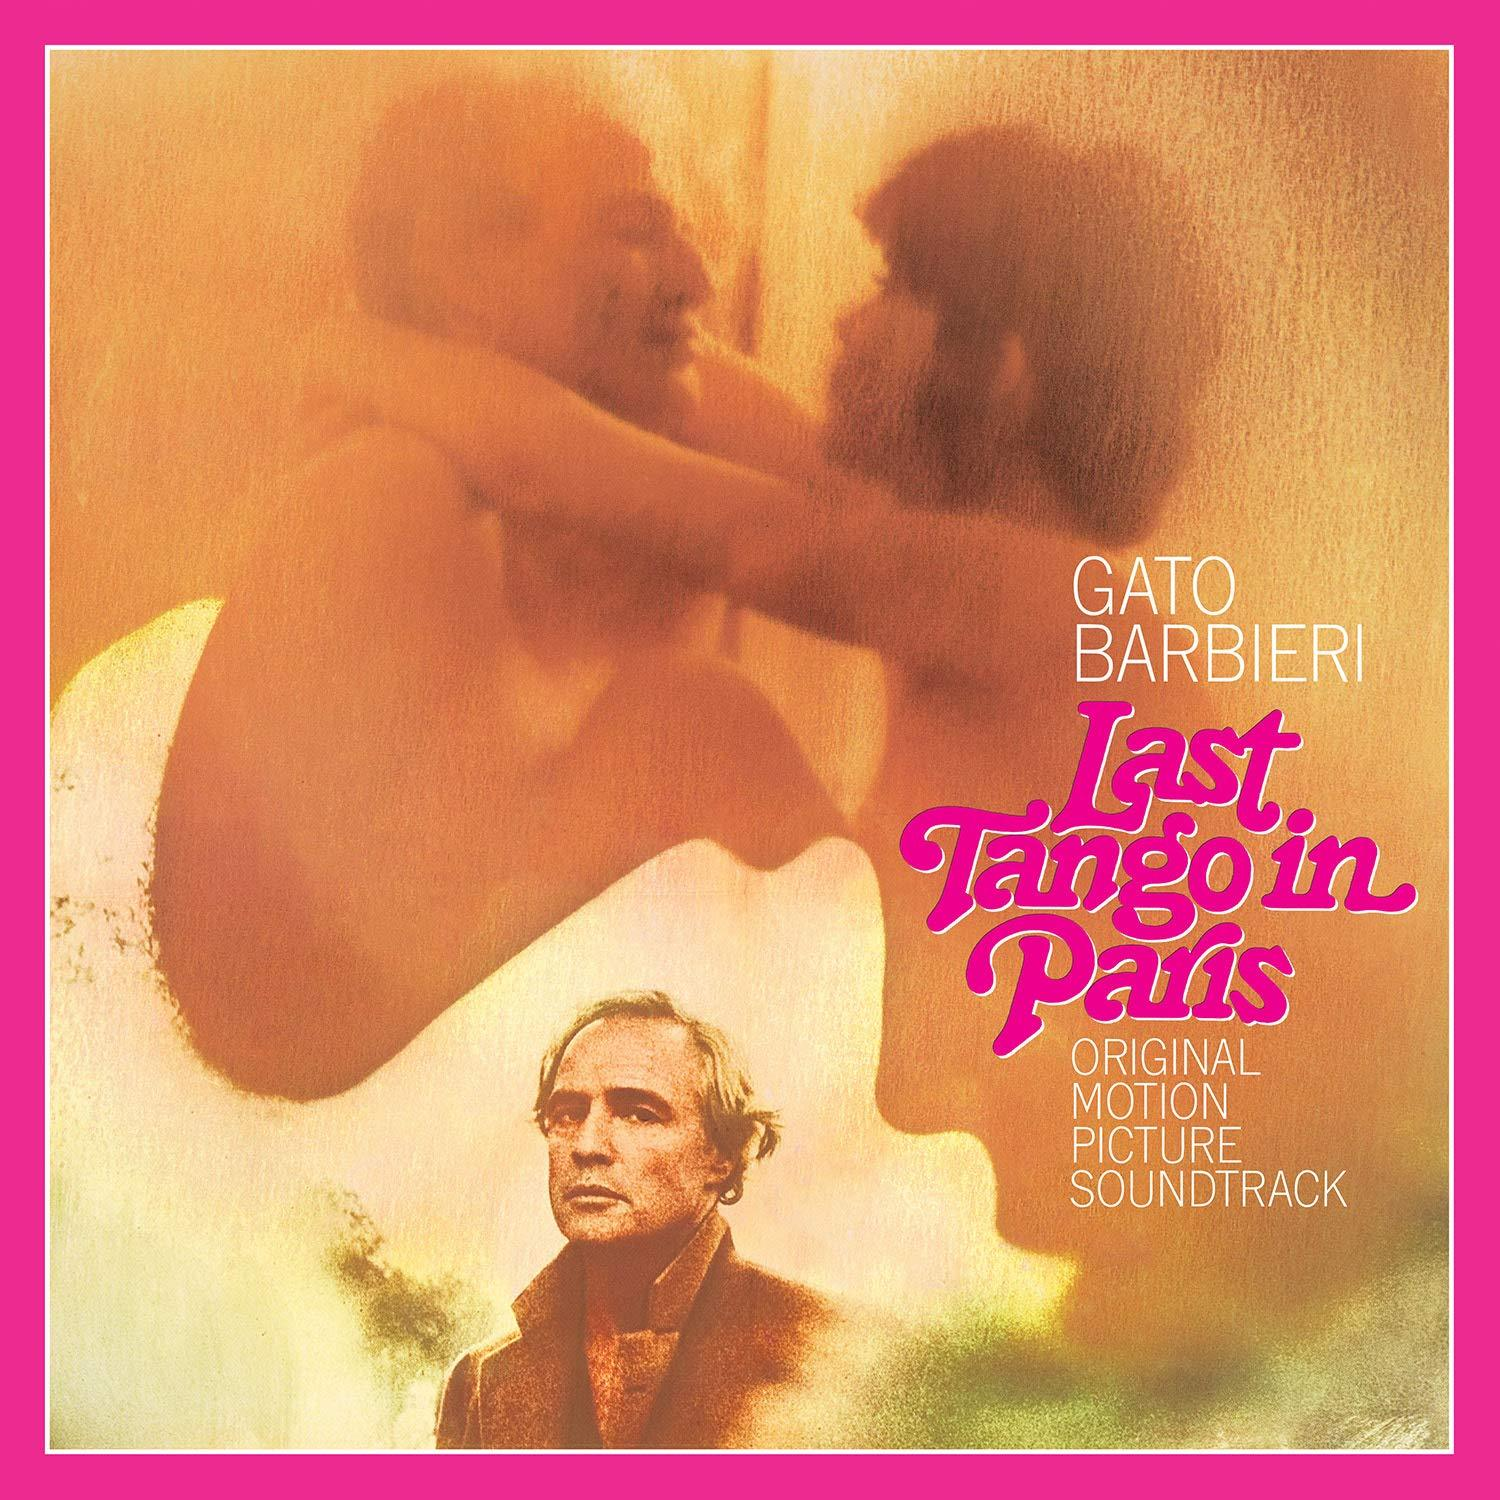 Gato Barbieri - Last Tango In Paris (Soundtrack) [LP] (Pink Vinyl, gatefold, limited to 500) - Urban Vinyl | Records, Headphones, and more.